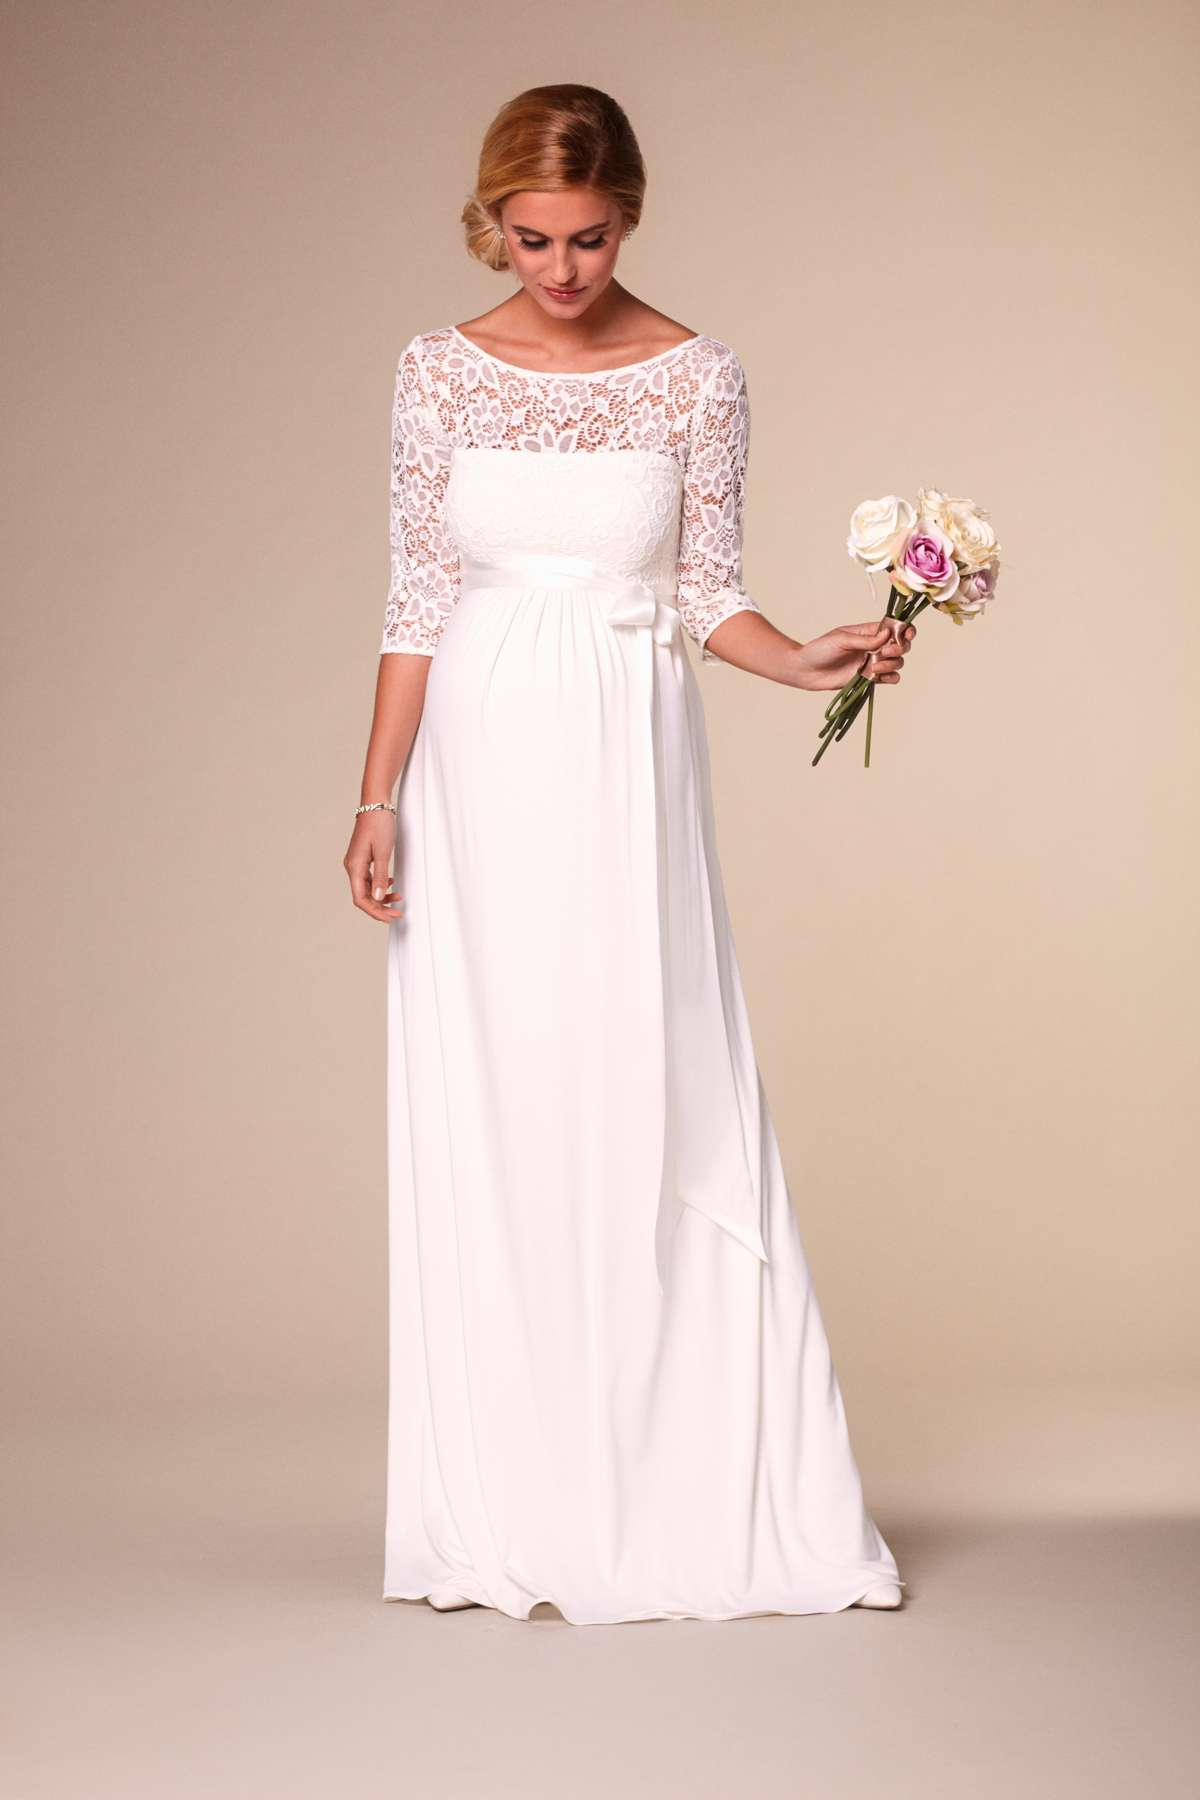 Stunning maternity wedding dresses love our wedding lucia ombrellifo Choice Image